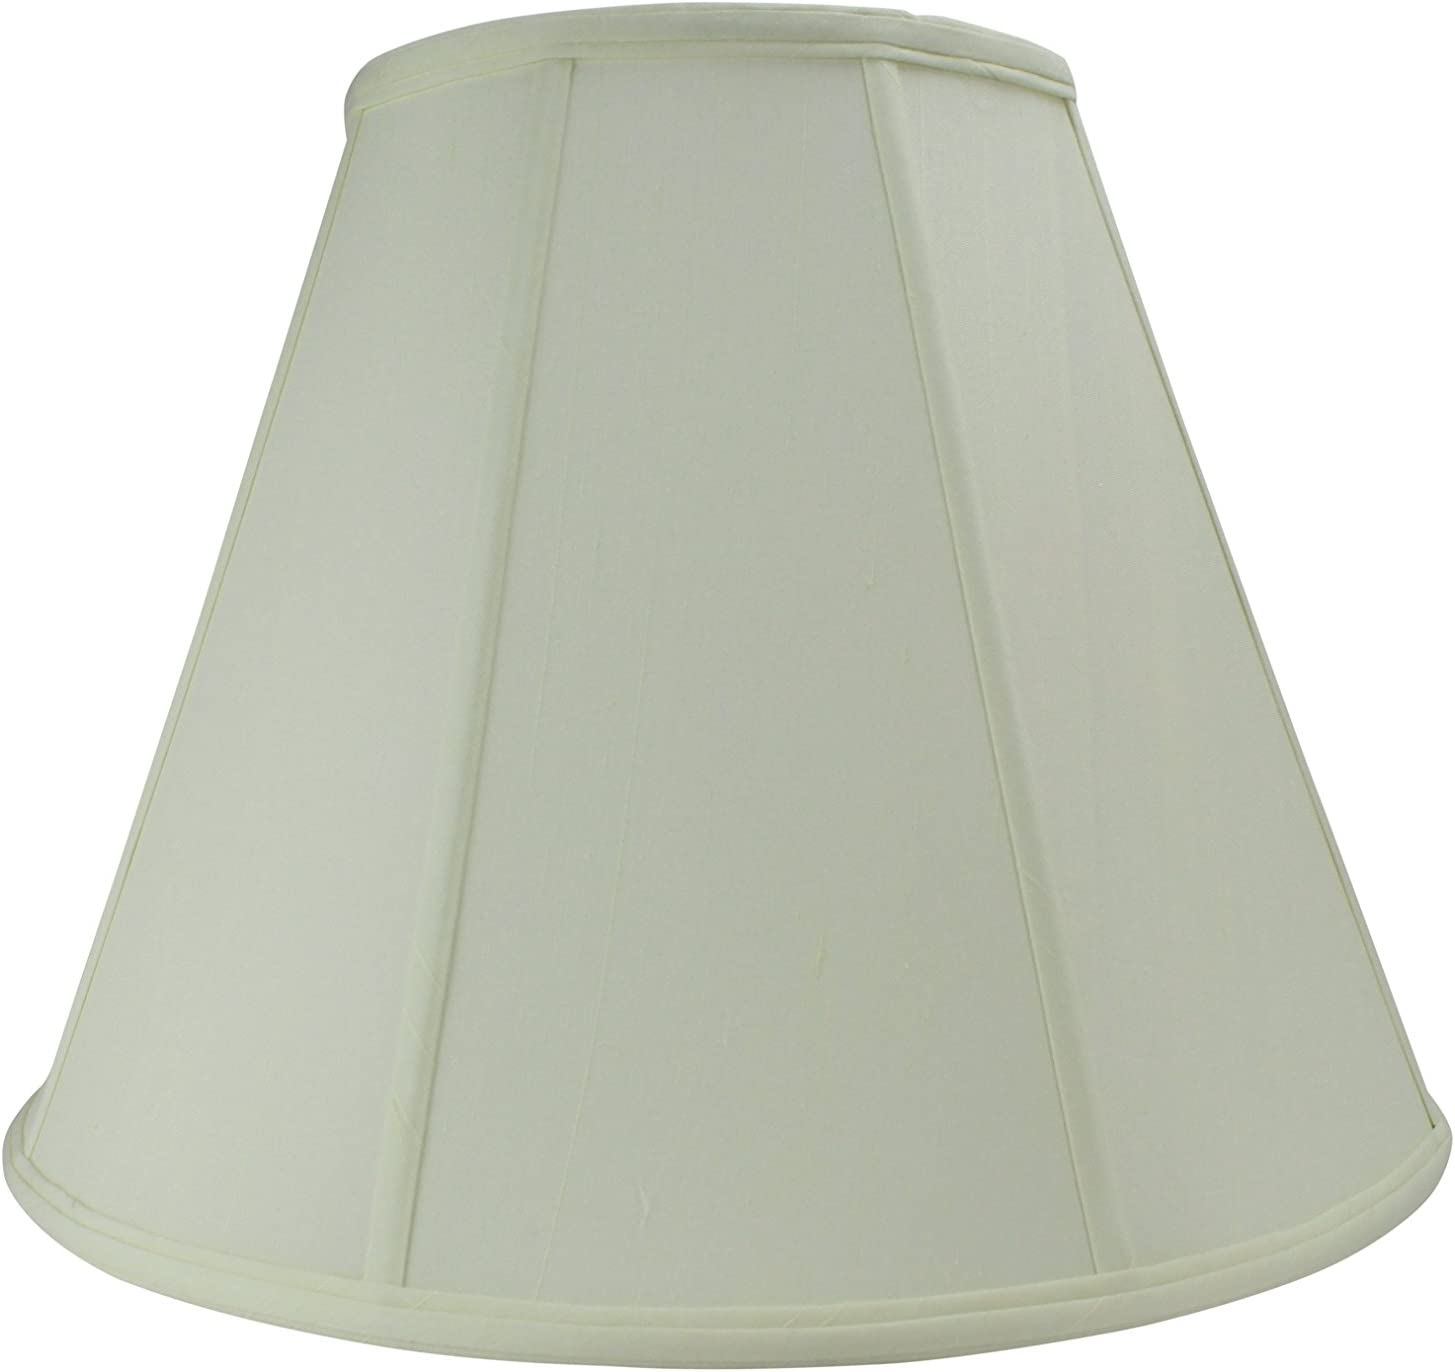 Deep Empire Shantung Silk Softback Lamp Shade Off White Eggshell Color 20 Inch By Upgradelamps Amazon Com